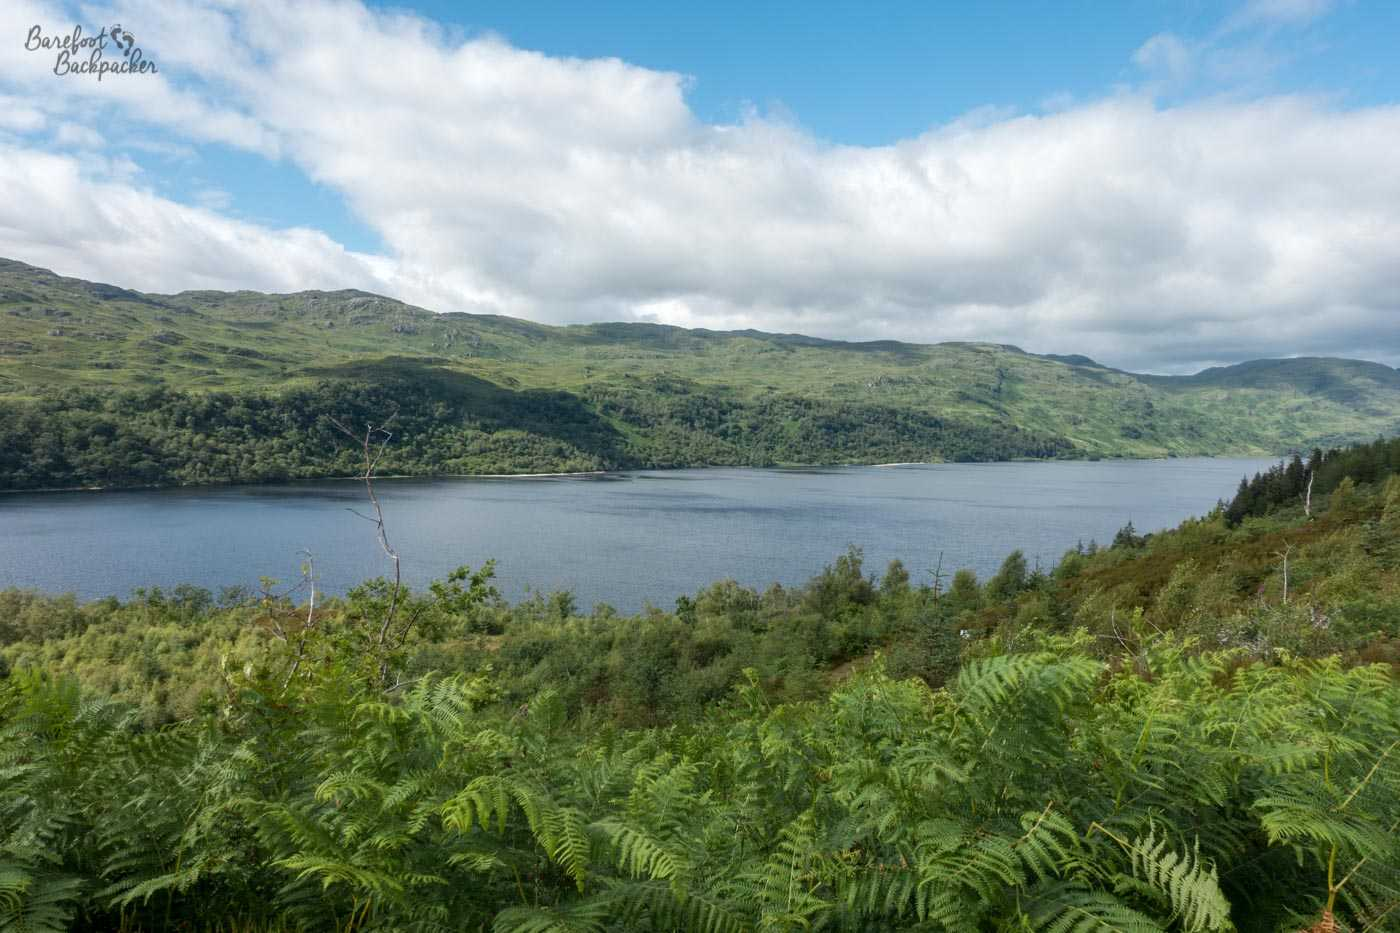 In the foreground are ferns. The middle of shot is the loch, stretching right across the image. It's constantly quite wide. In the background are green hills, the lower stretches are covered with trees but the upper reaches are quite bare. The sky is quite blue with large patches of cloud.